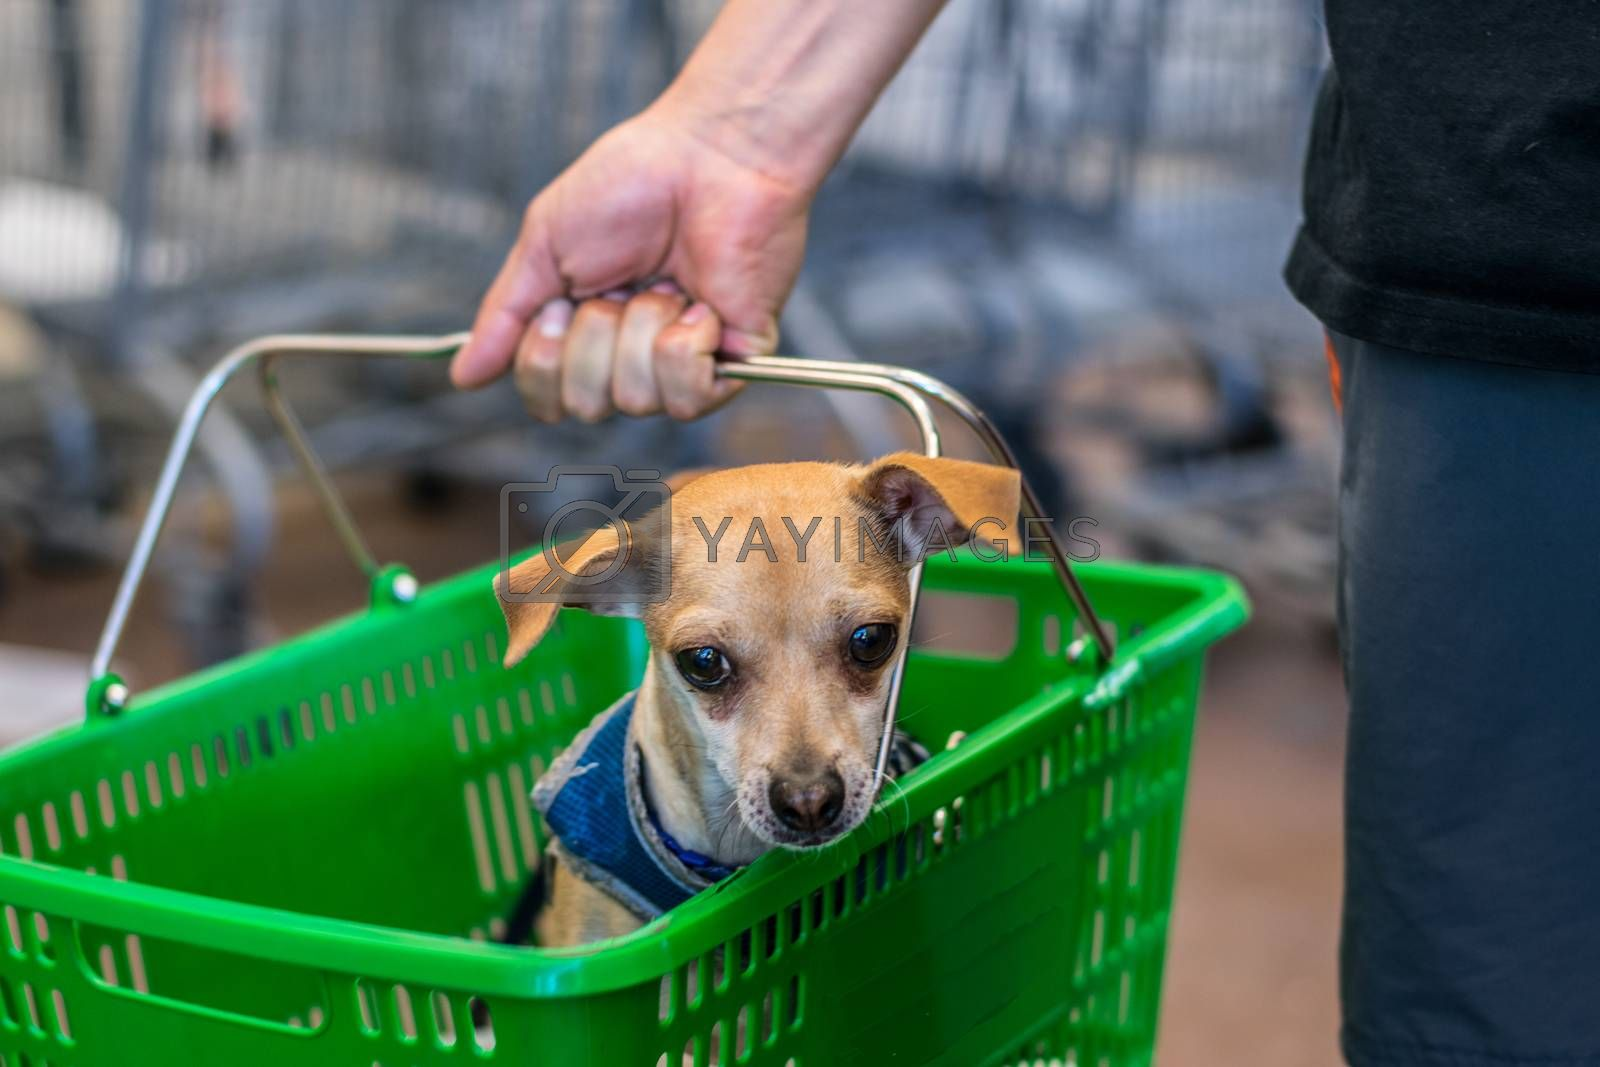 Dog sitting in green grocery basket in checkout line